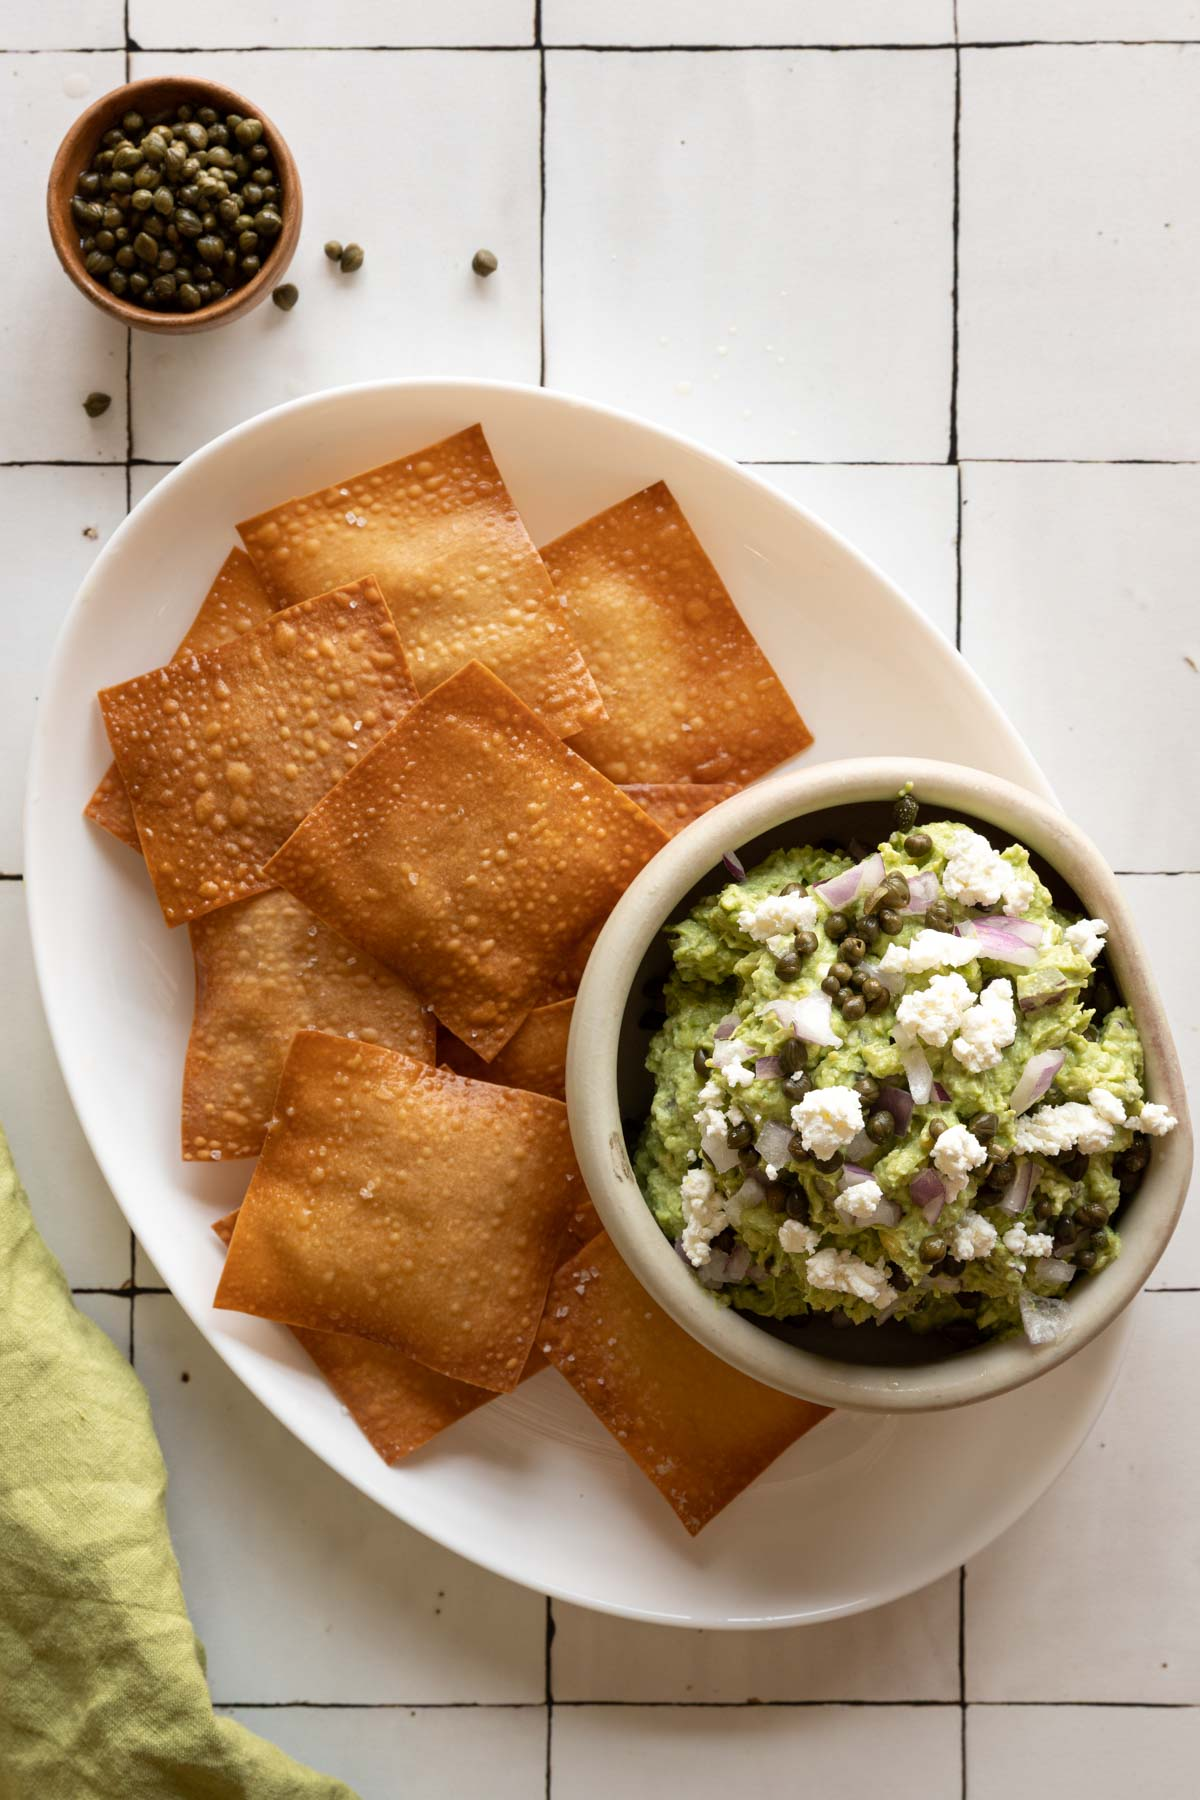 Wonton skins and a bowl of goat cheese guacamole on a plate